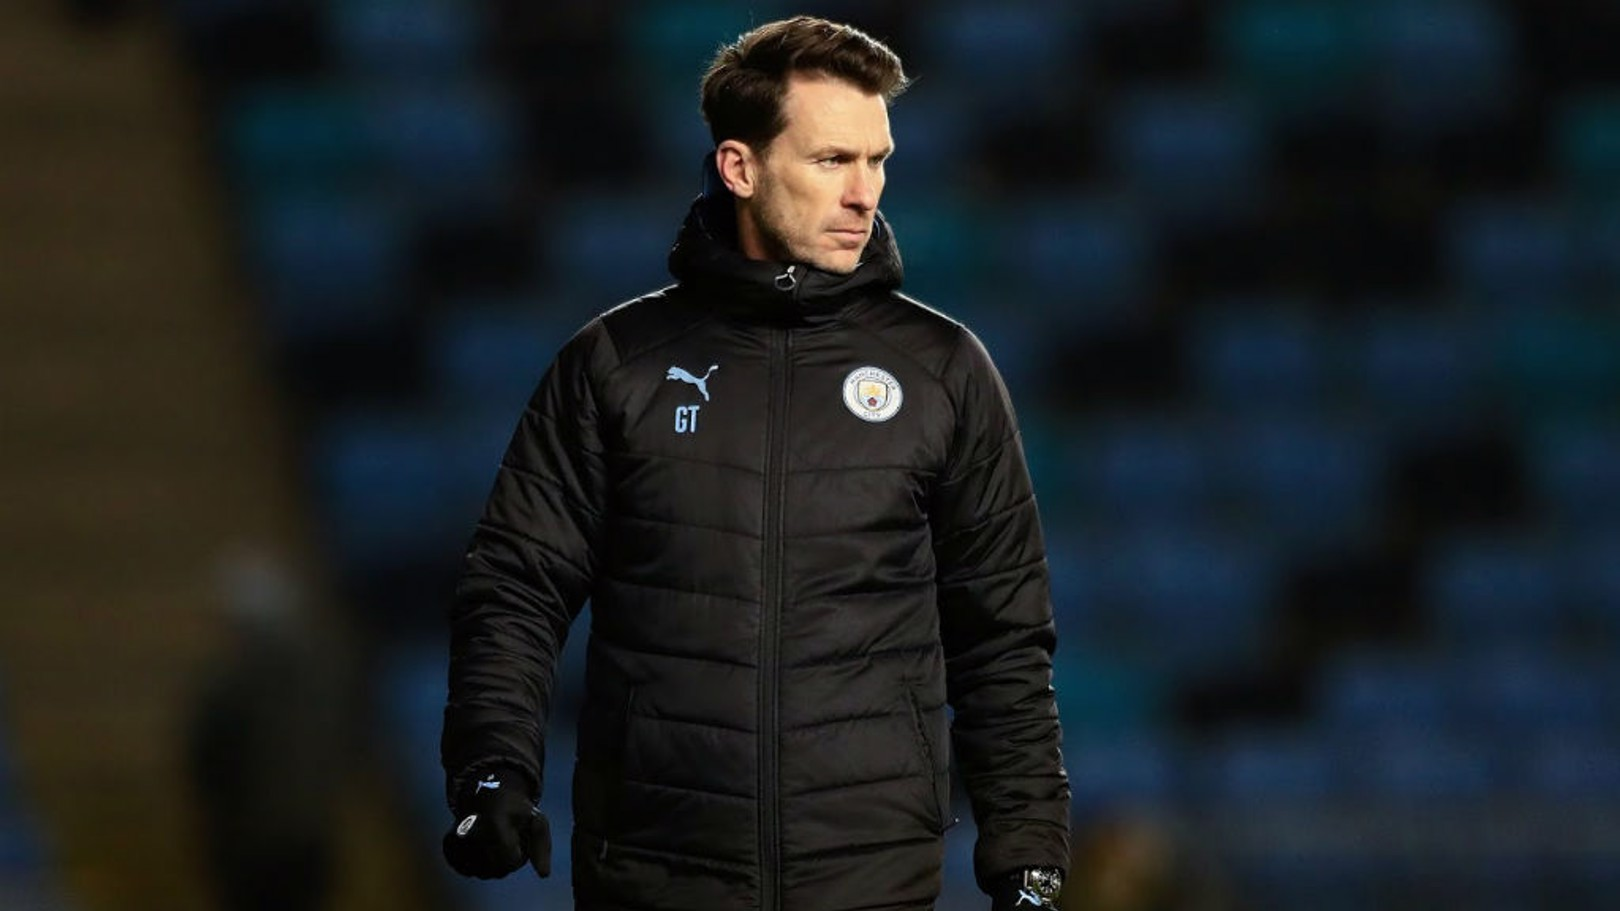 WATCHING BRIEF: Gareth Taylor looks on during City's FA Youth Cup win over Fulham